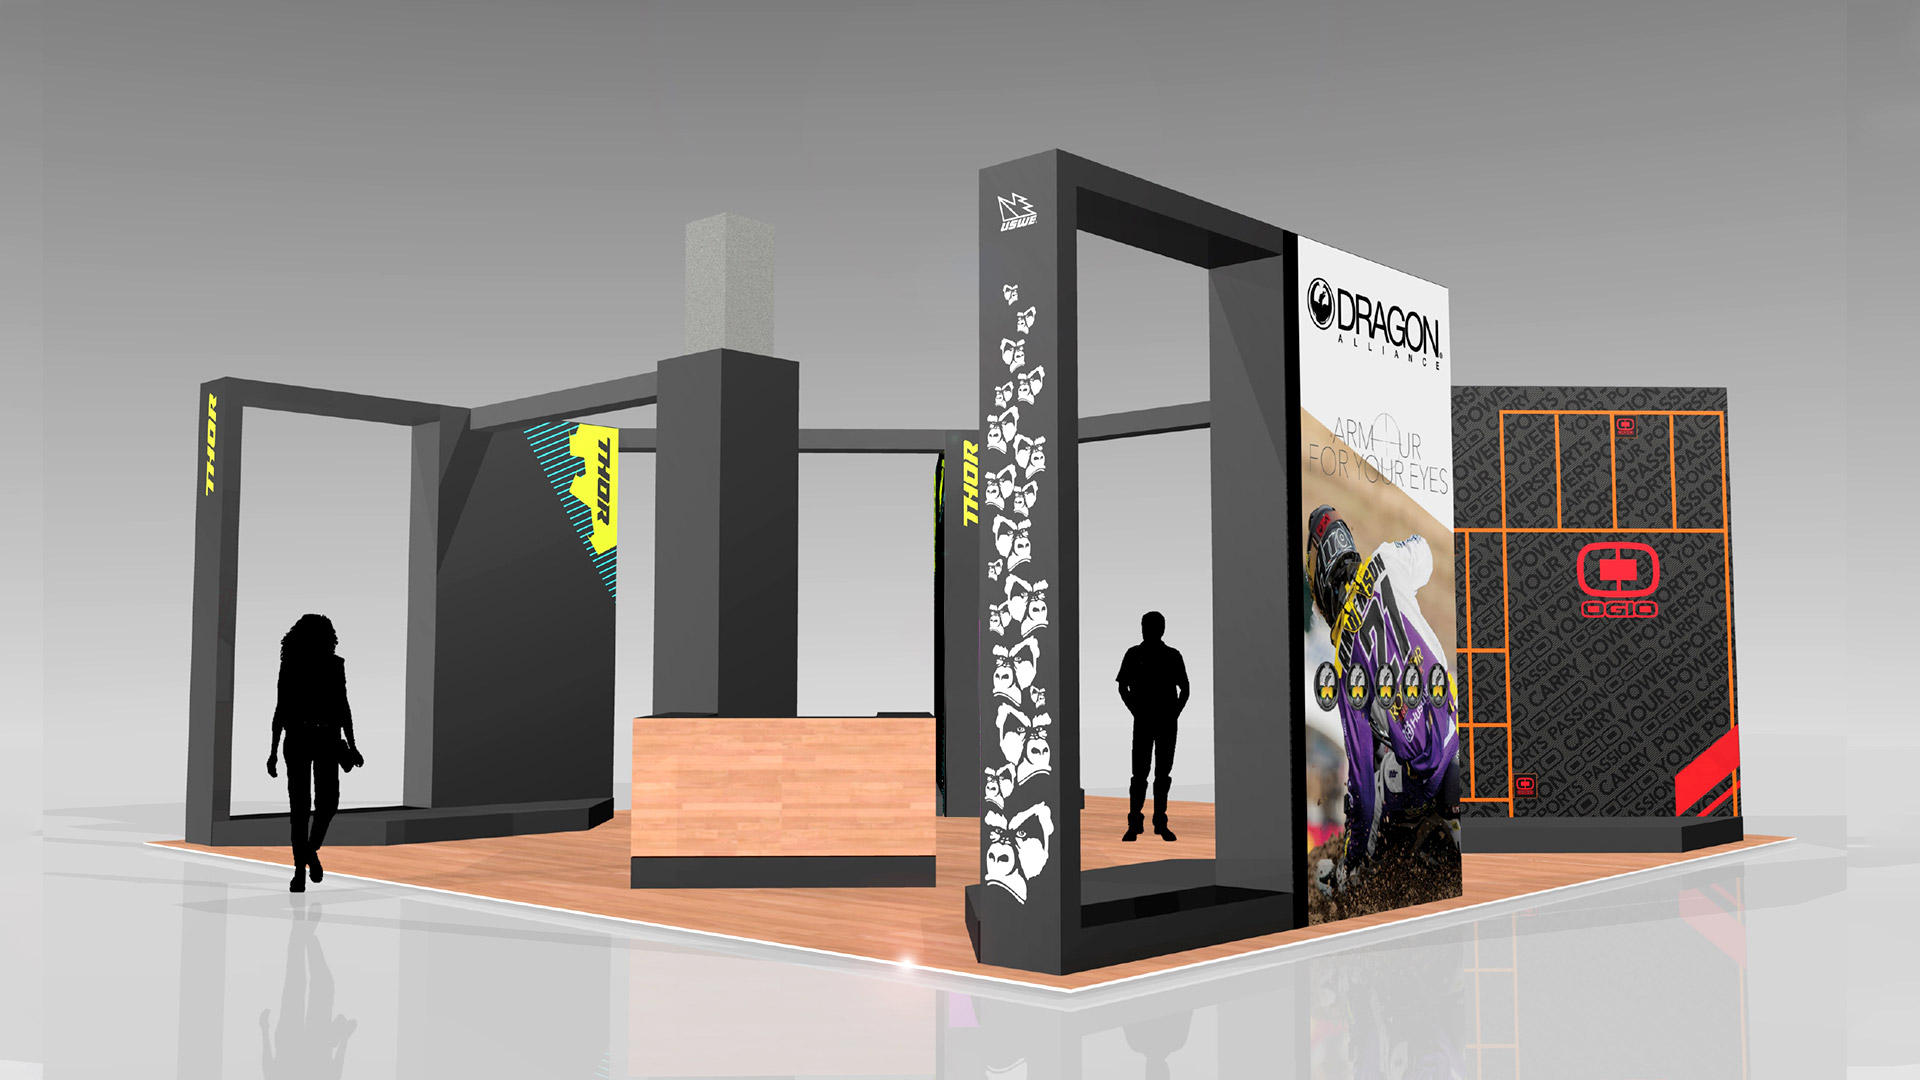 Dirt Bike Show UK - Full MAdison stand render